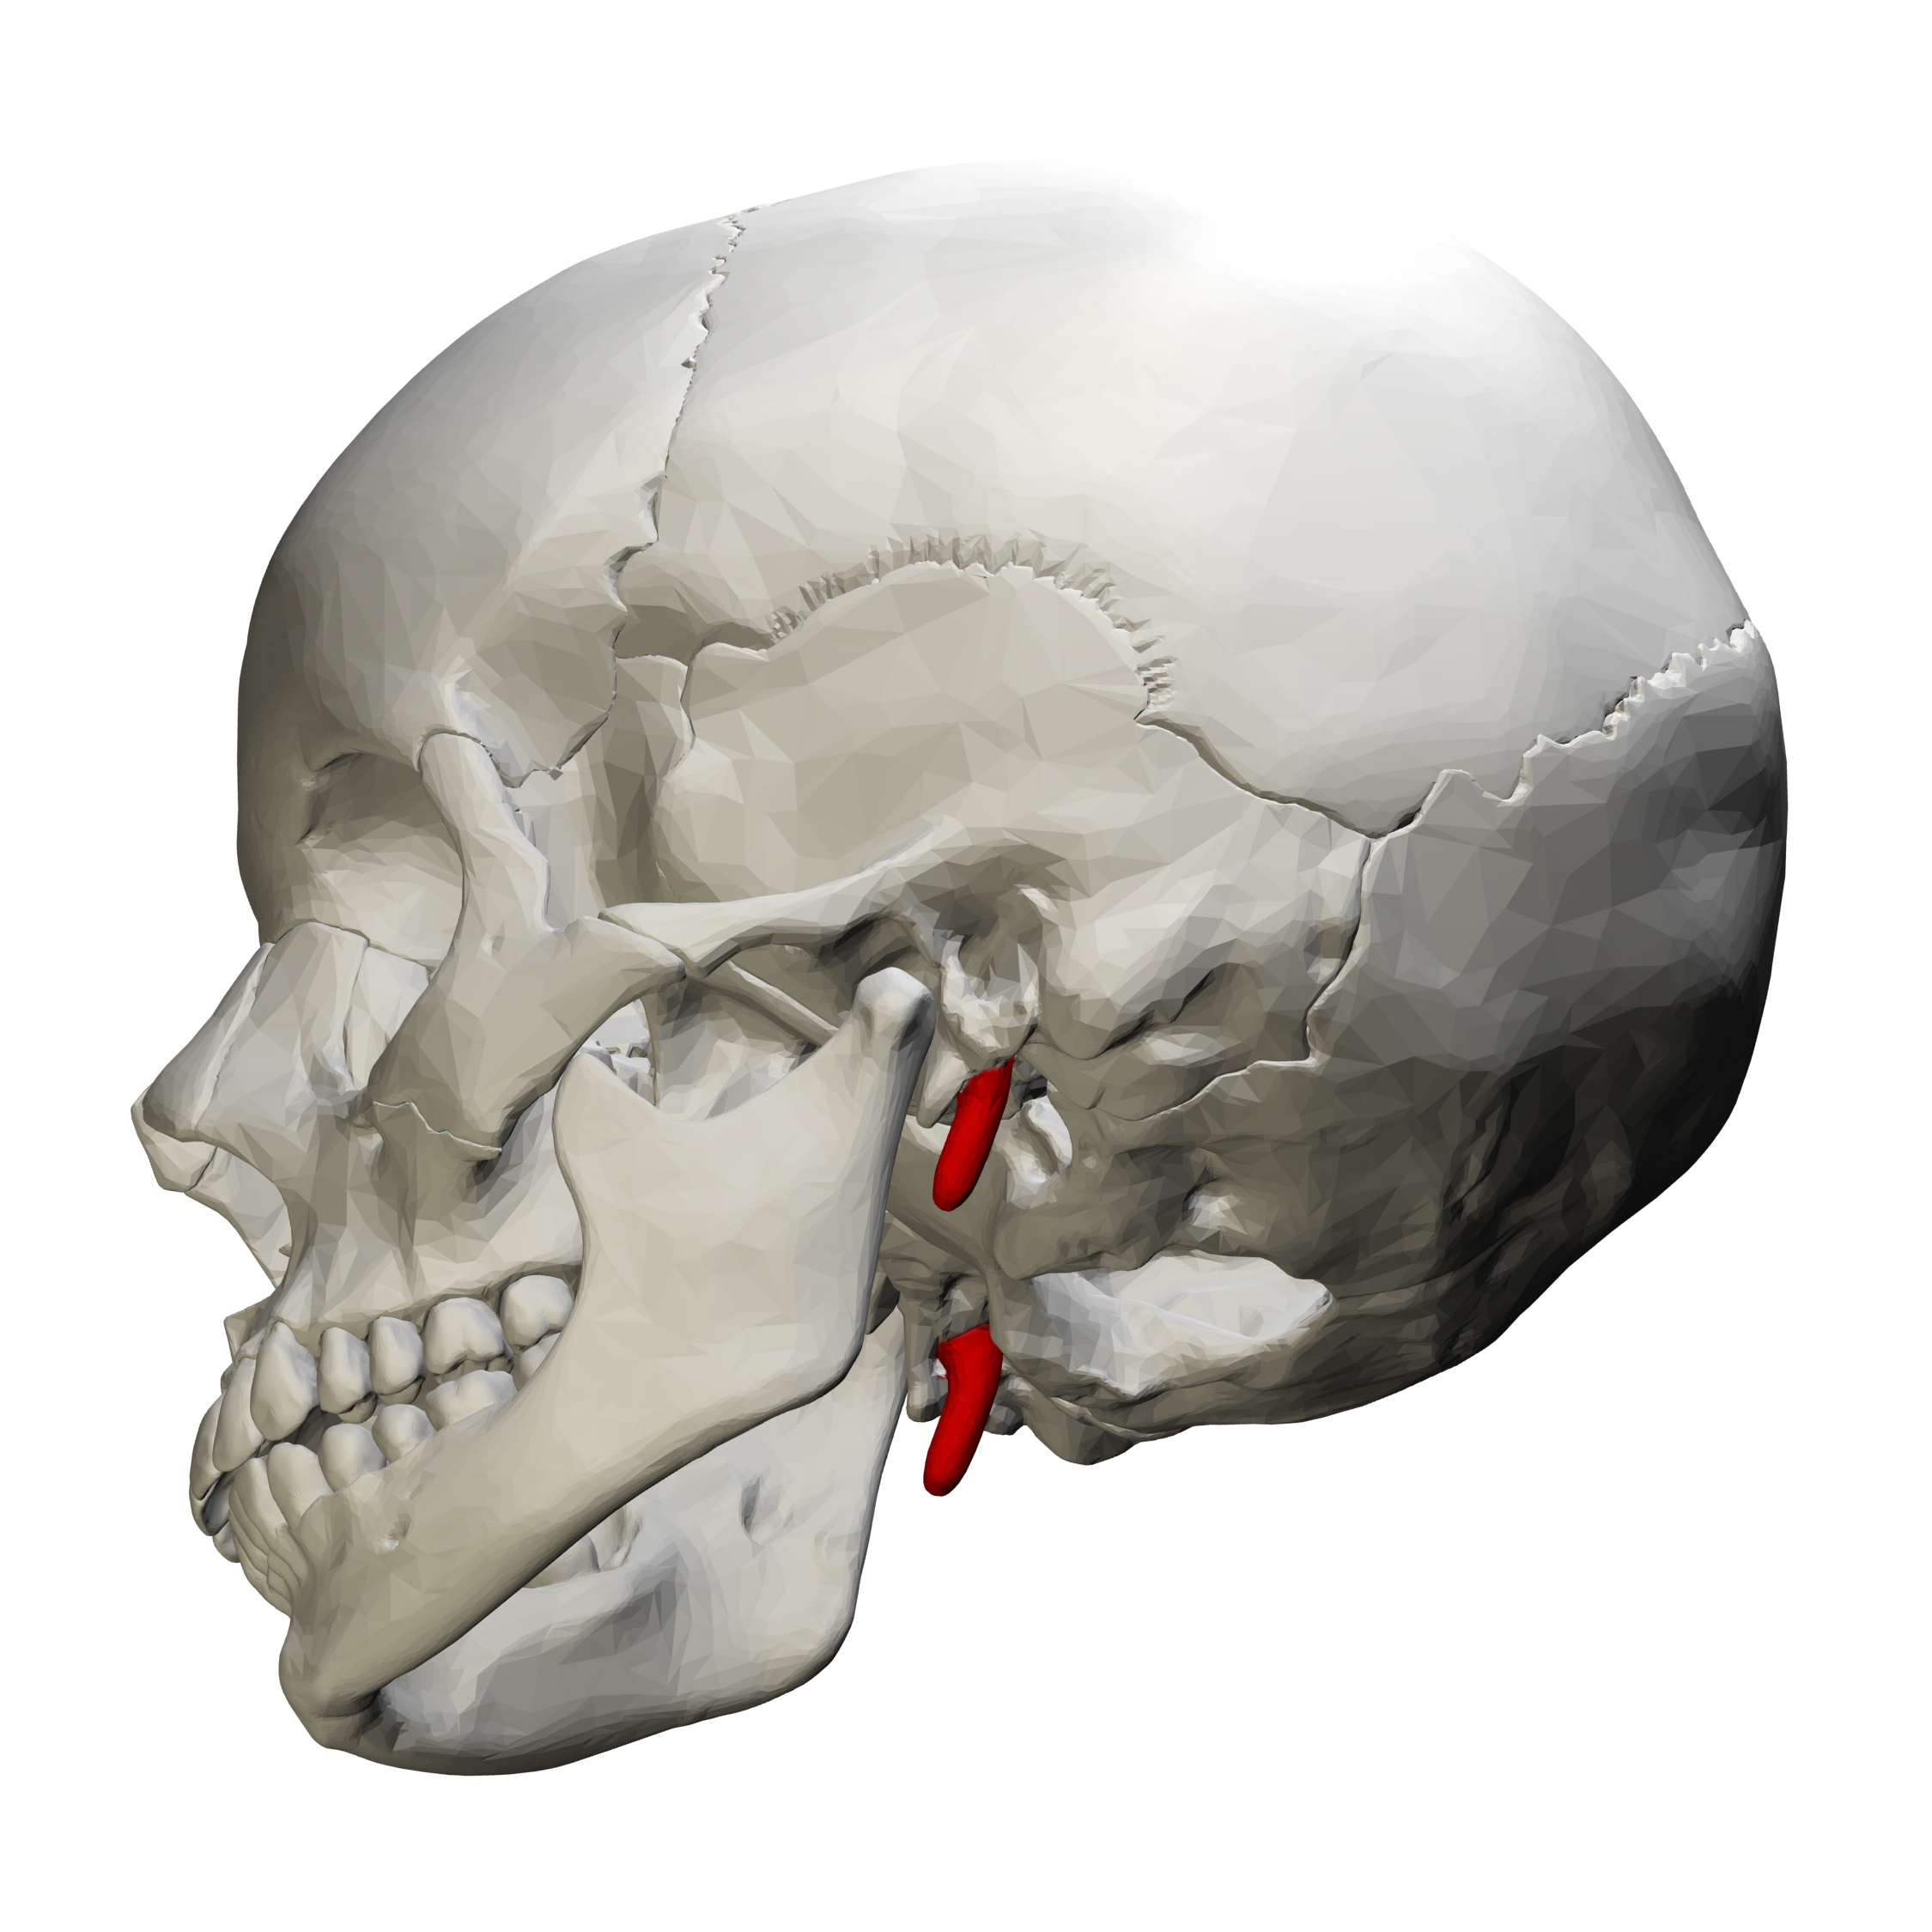 File:Styloid process of temporal bone - lateral view03.png